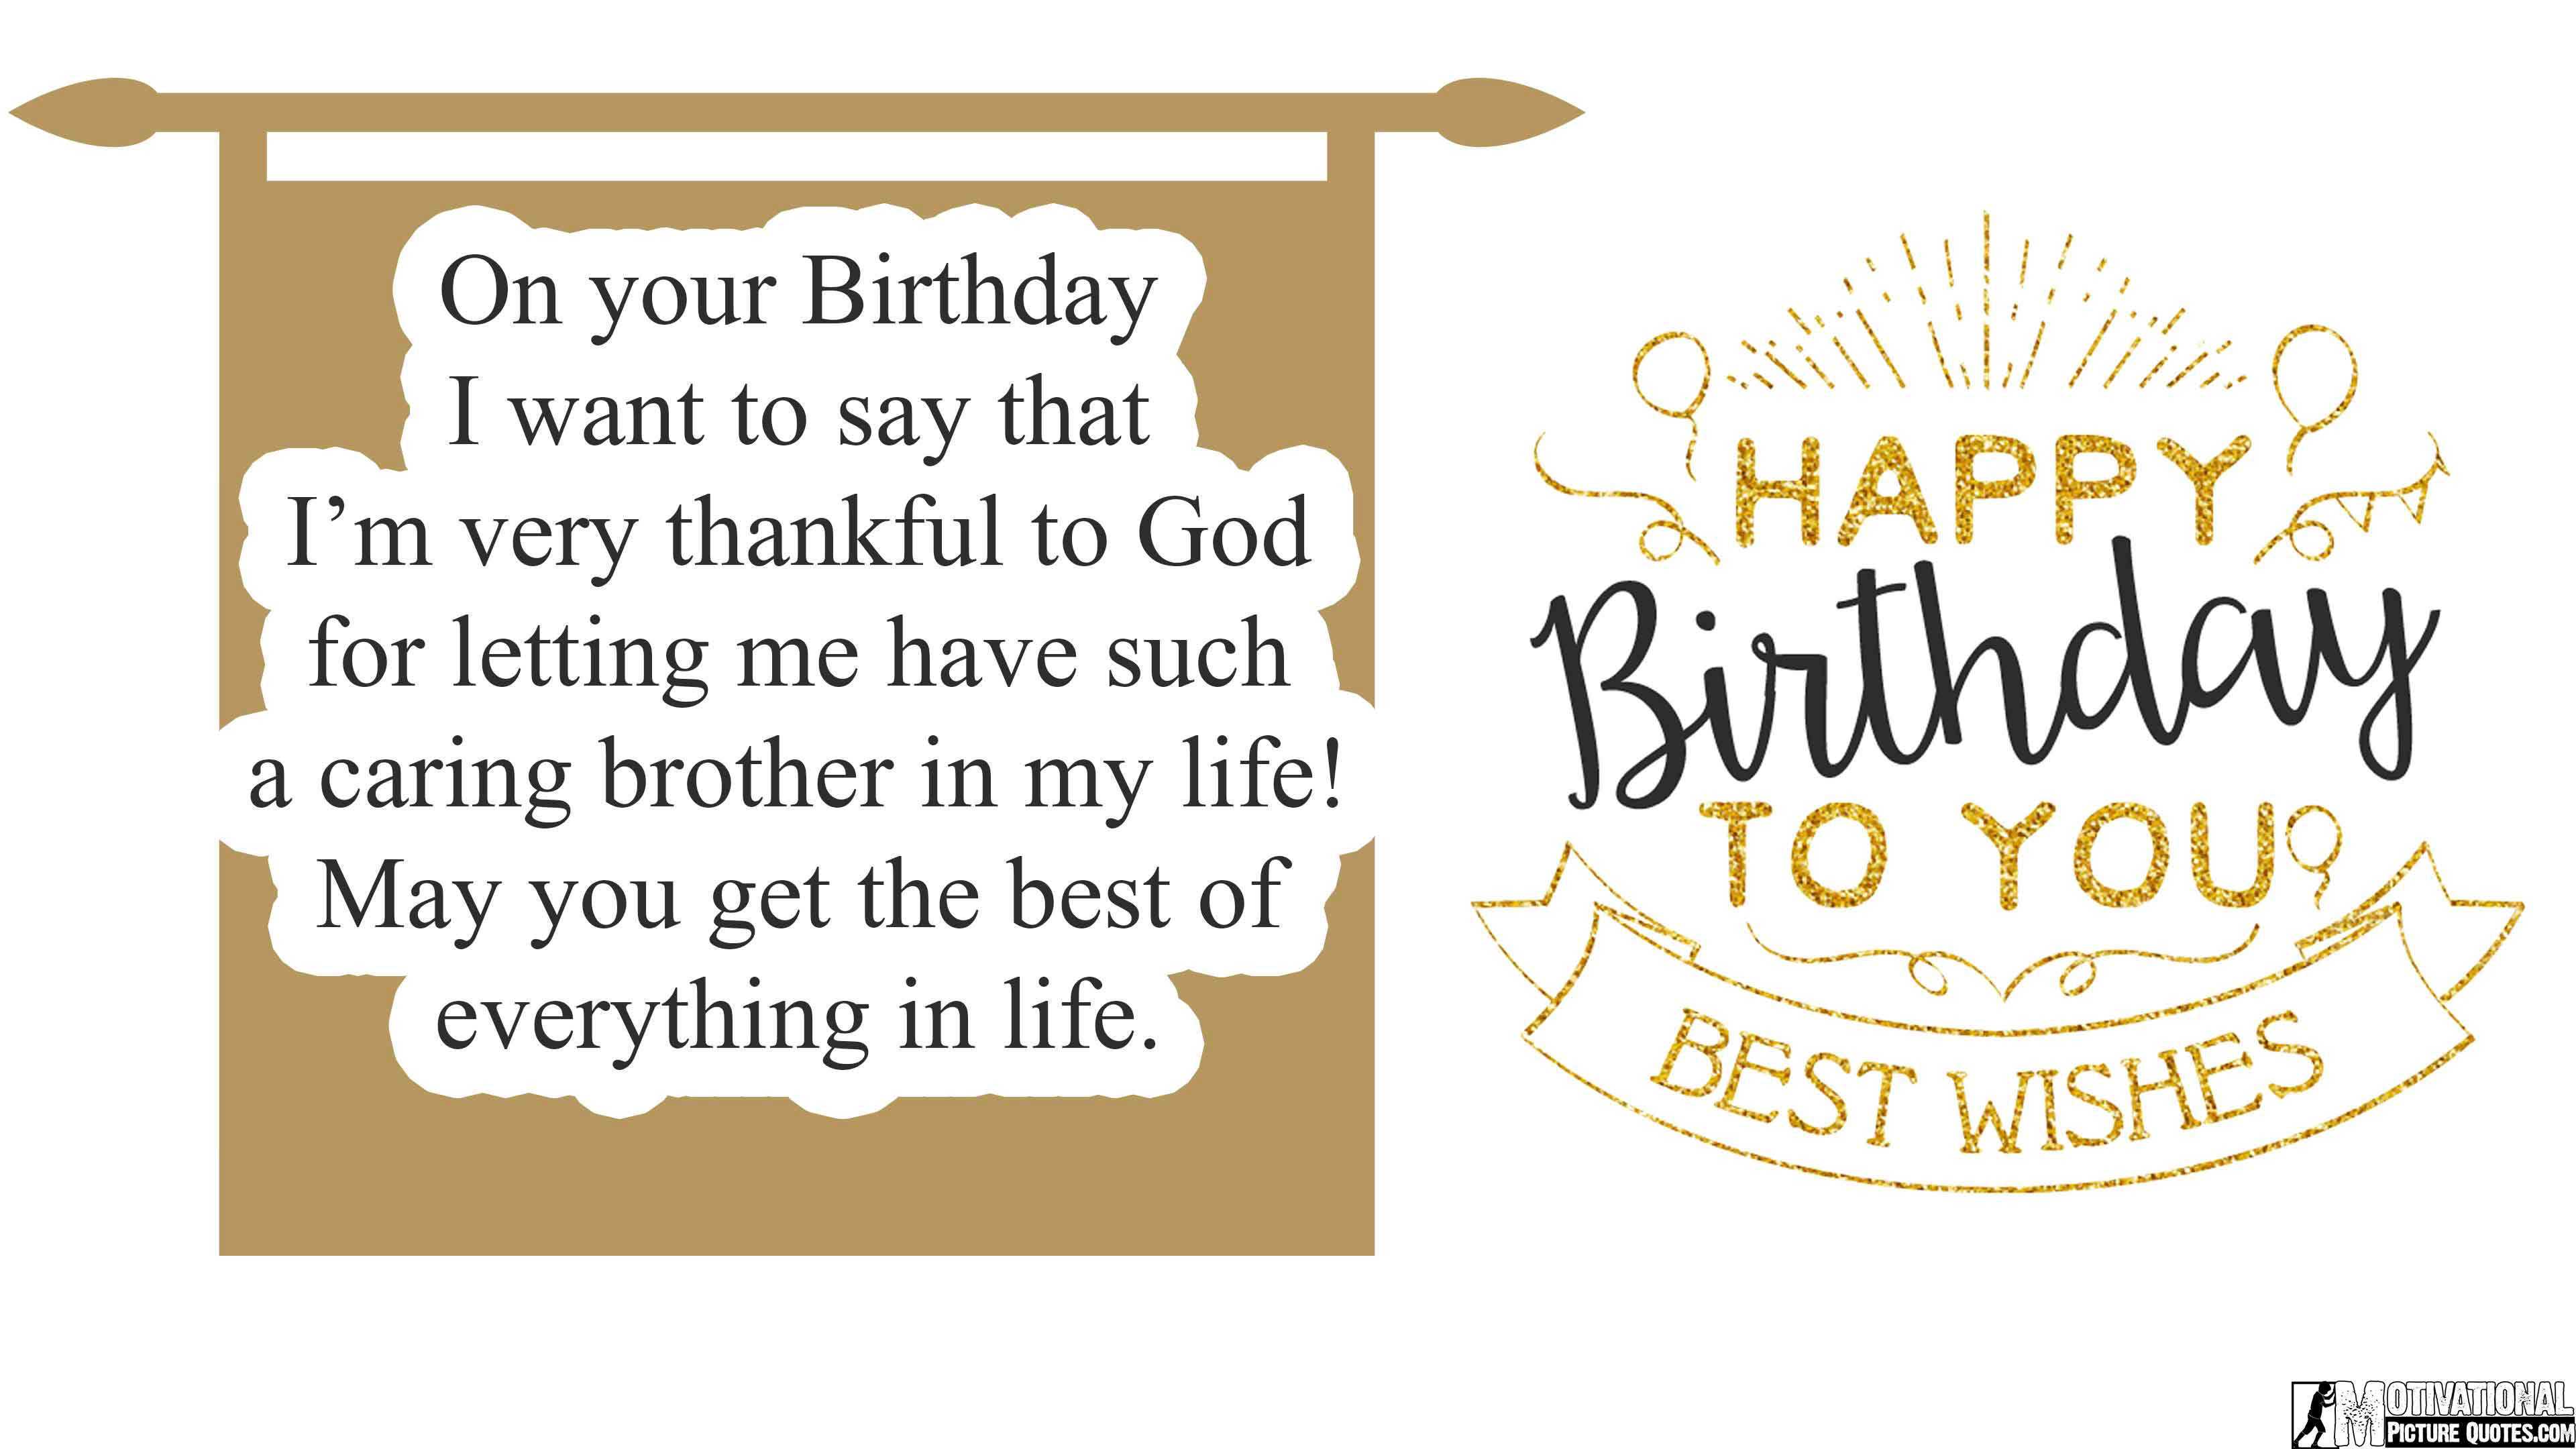 Awe Inspiring Birthday Messages For Brother From Sister Inspirational Birthday Personalised Birthday Cards Veneteletsinfo